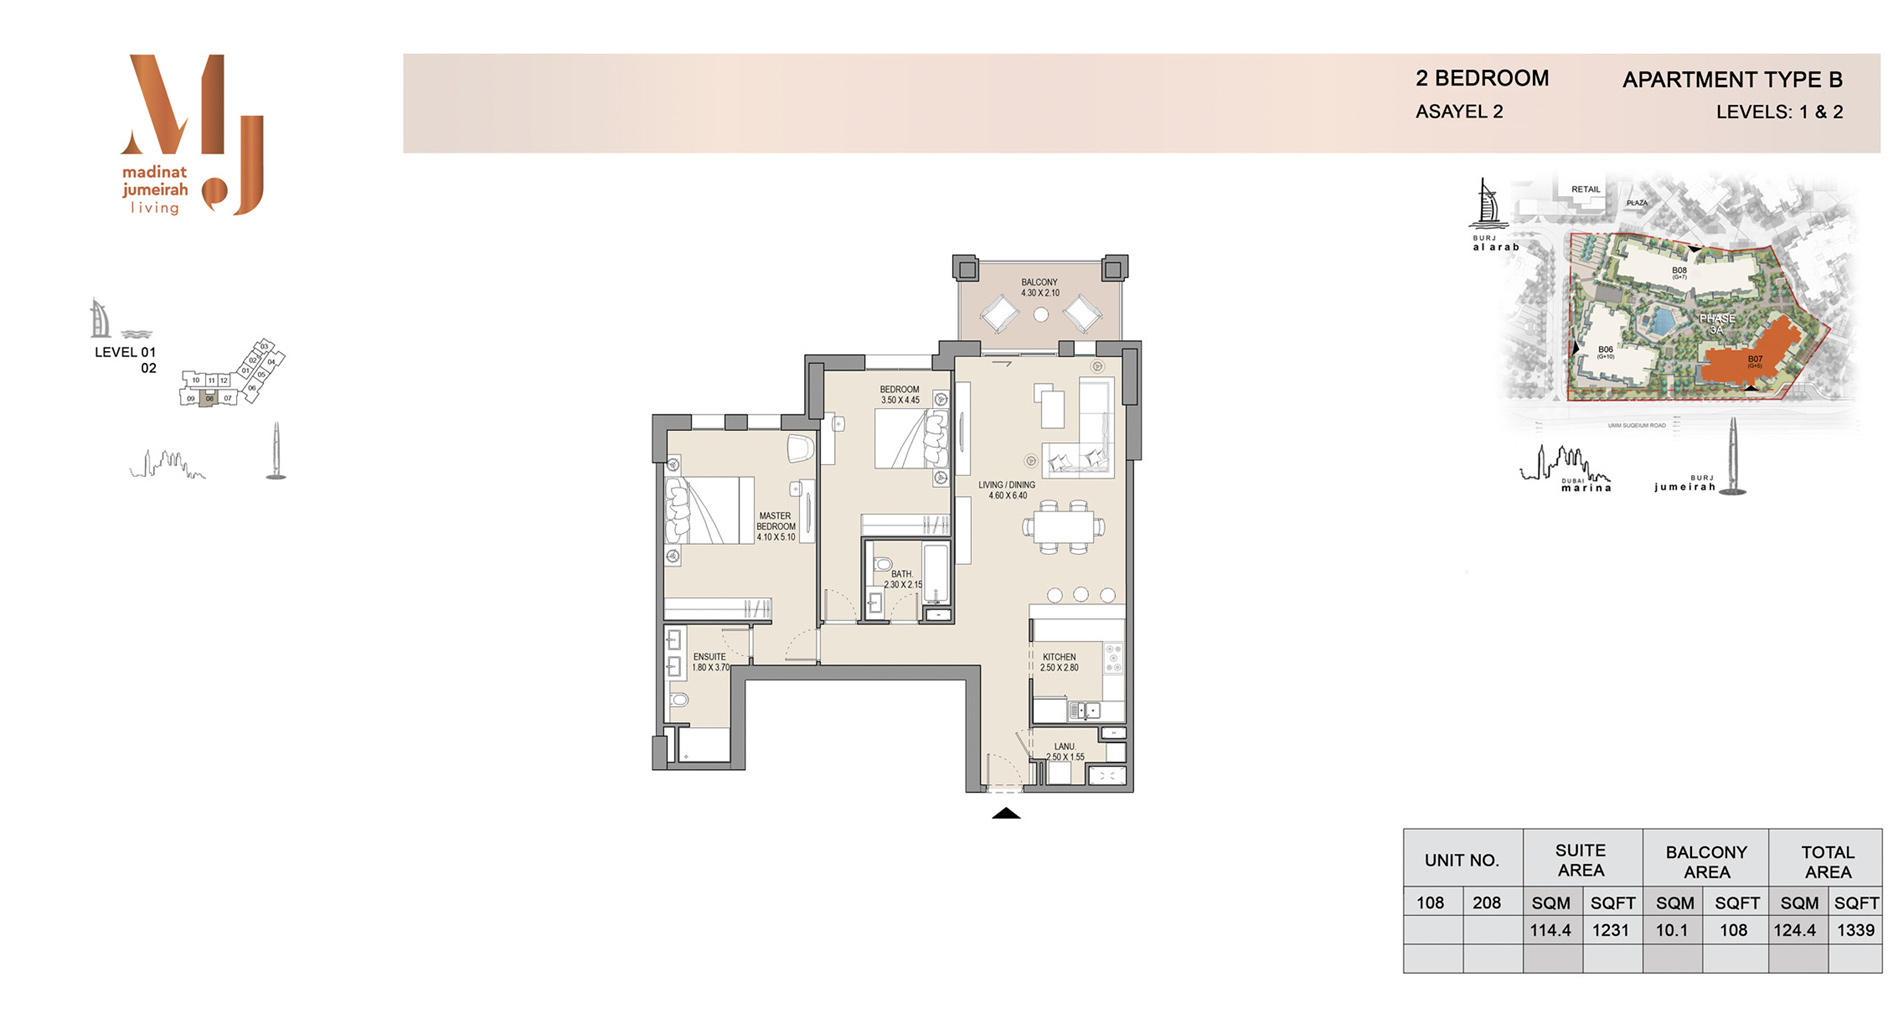 Building 2, 2 Bed Type B Level 1 to 2, Size 1339    sq. ft.